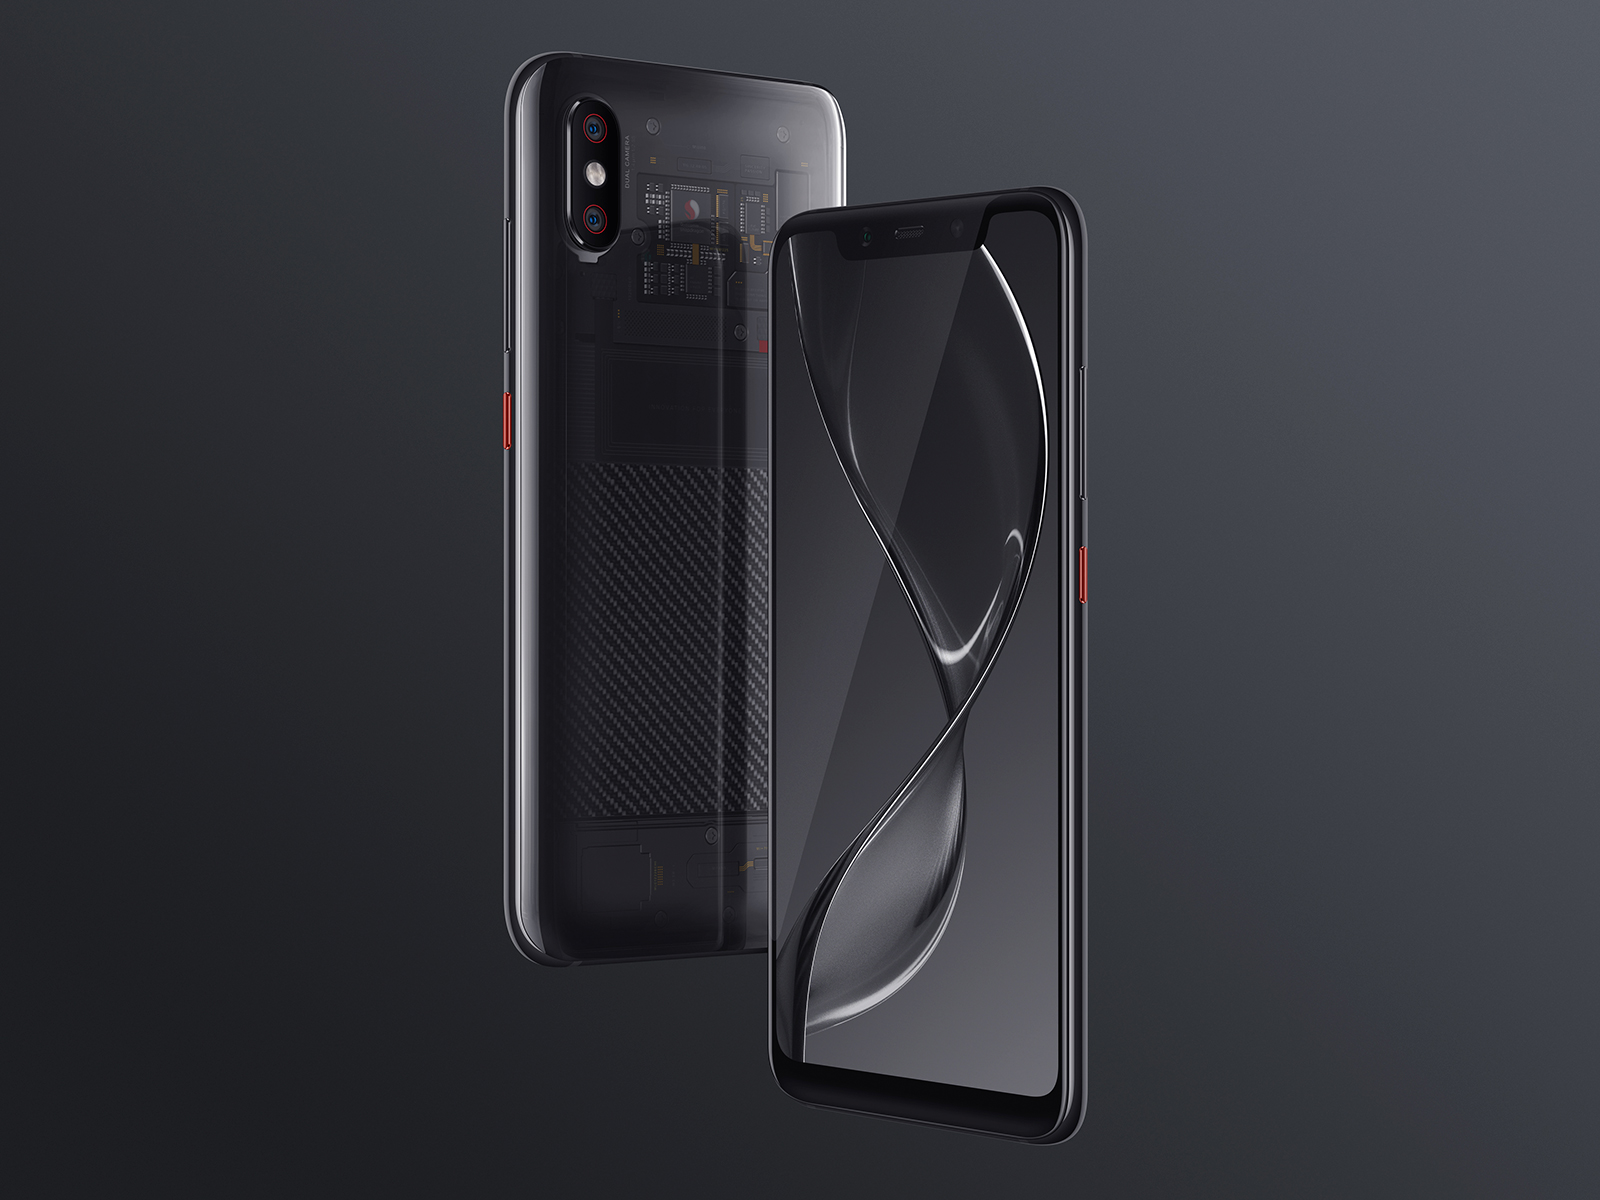 Xiaomi Mi 8 launched: Specs, Price, Features, Release Date, and more